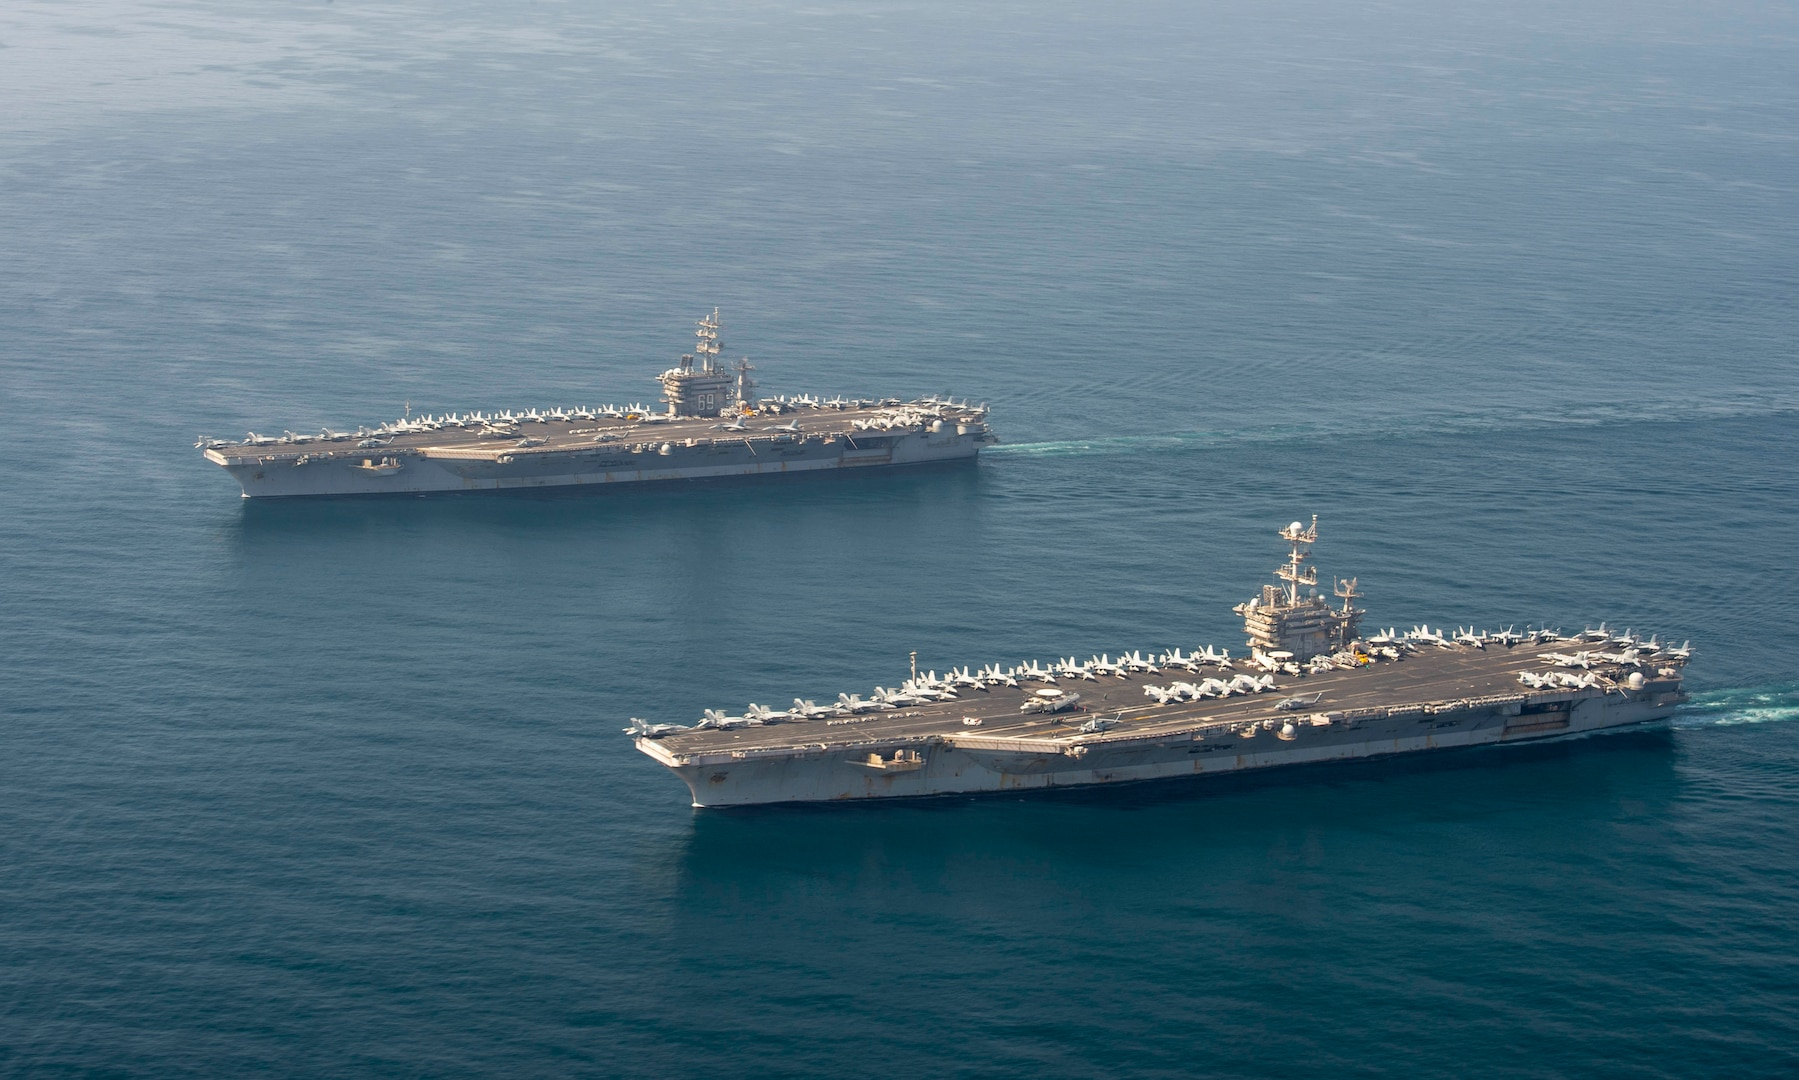 The aircraft carriers USS Dwight D. Eisenhower (CVN 69), top, and USS Harry S. Truman (CVN 75) transit the Arabian Sea March 18, 2020. The Harry S. Truman Carrier Strike Group is deployed to the U.S. 5th Fleet area of operations in support of naval operations to ensure maritime stability and security in the Central Region, connecting the Mediterranean and the Pacific through the western Indian Ocean and three strategic choke points.